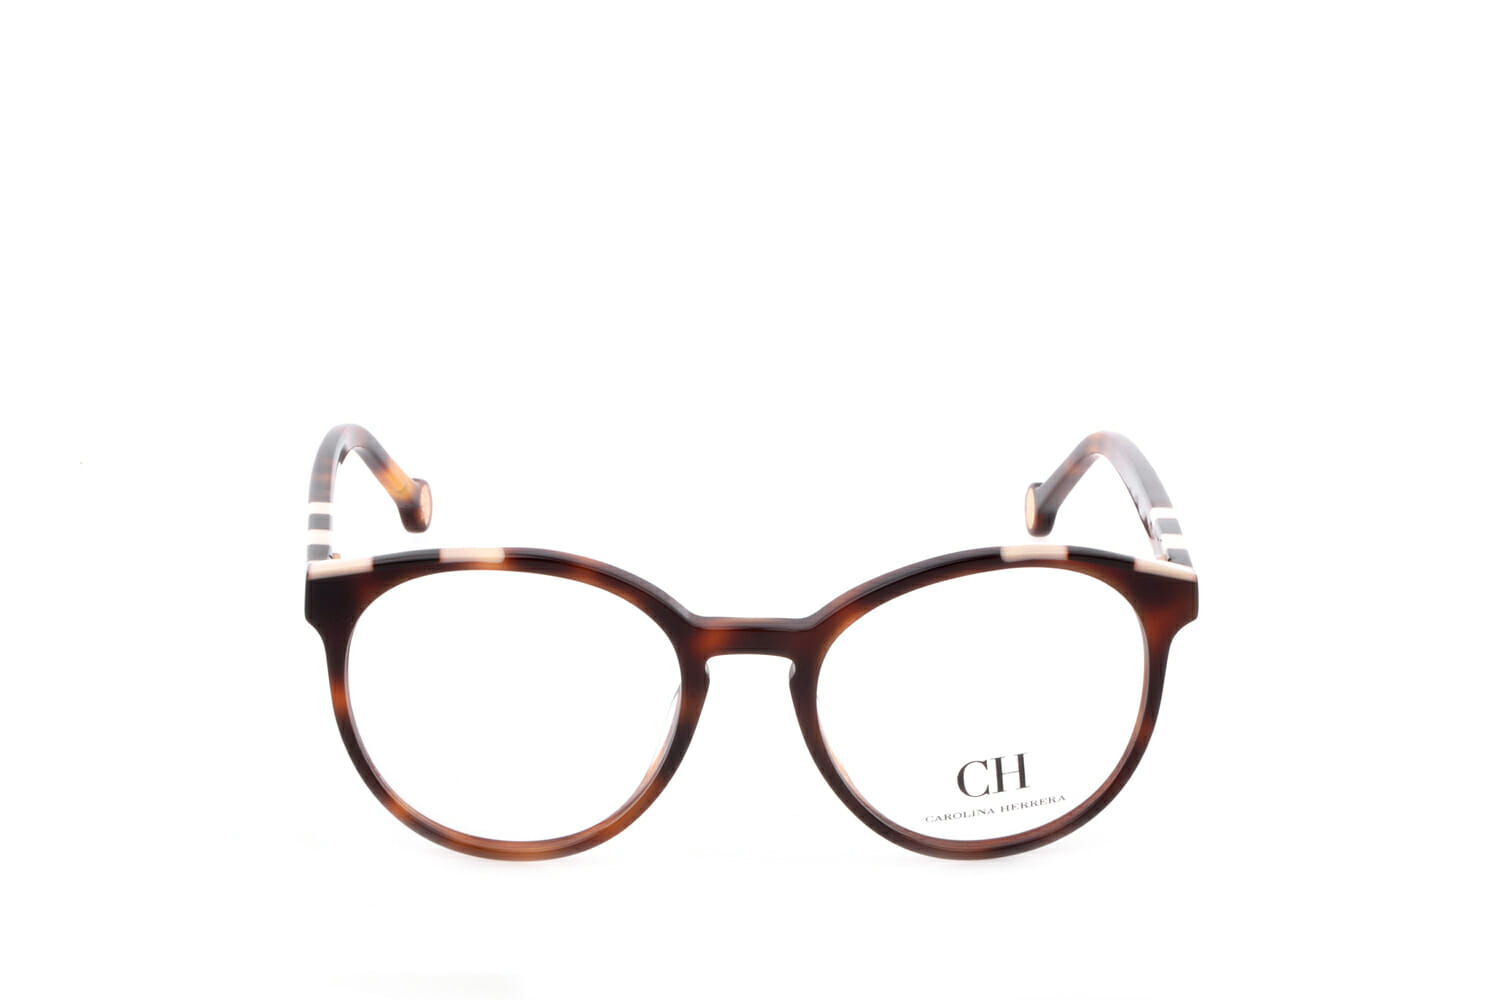 CH CAROLINA HERRERA EYEWEAR OPTICAL WOMEN FRONTAL